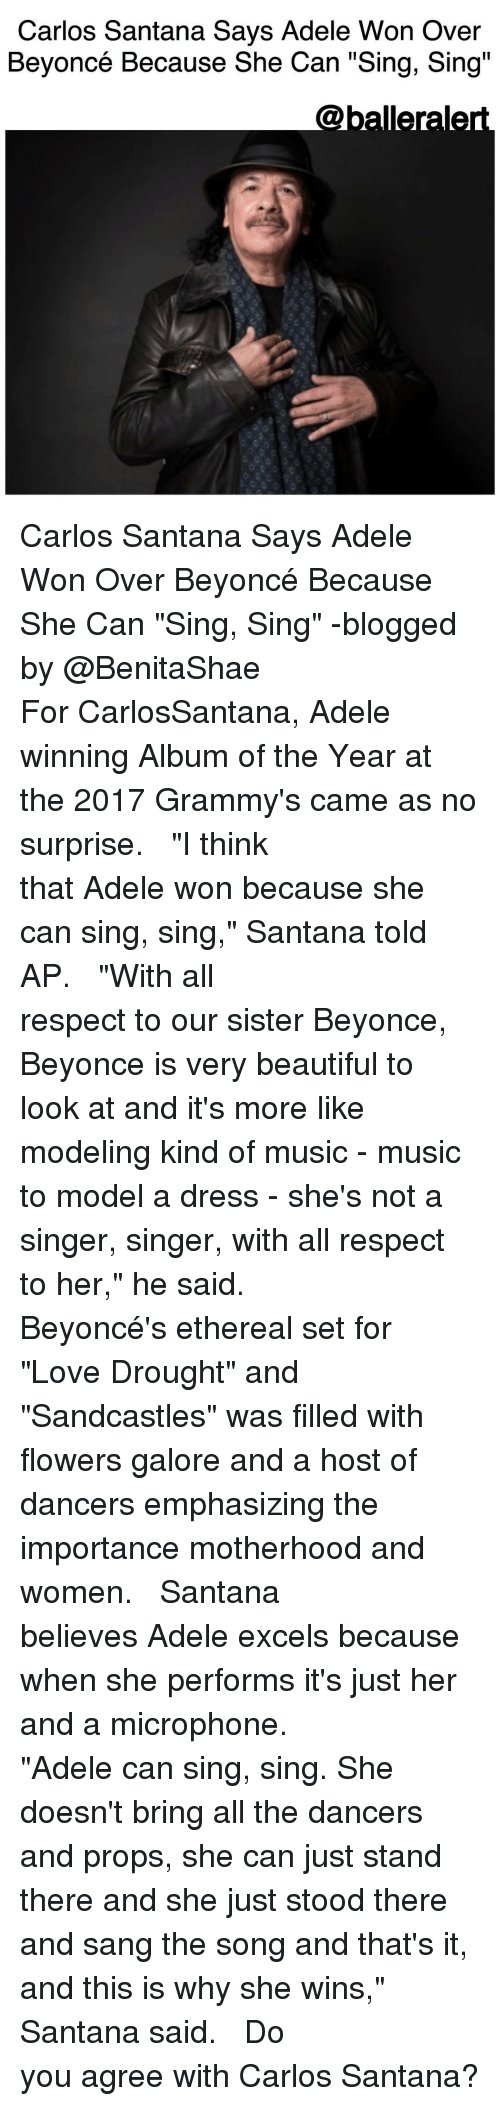 """adell: Carlos Santana Says Adele Won Over  Beyoncé Because She Can """"Sing, Sing""""  Caballerale Carlos Santana Says Adele Won Over Beyoncé Because She Can """"Sing, Sing"""" -blogged by @BenitaShae ⠀⠀⠀⠀⠀⠀⠀⠀⠀ ⠀⠀⠀⠀⠀⠀⠀⠀⠀ For CarlosSantana, Adele winning Album of the Year at the 2017 Grammy's came as no surprise. ⠀⠀⠀⠀⠀⠀⠀⠀⠀ ⠀⠀⠀⠀⠀⠀⠀⠀⠀ """"I think that Adele won because she can sing, sing,"""" Santana told AP. ⠀⠀⠀⠀⠀⠀⠀⠀⠀ ⠀⠀⠀⠀⠀⠀⠀⠀⠀ """"With all respect to our sister Beyonce, Beyonce is very beautiful to look at and it's more like modeling kind of music - music to model a dress - she's not a singer, singer, with all respect to her,"""" he said. ⠀⠀⠀⠀⠀⠀⠀⠀⠀ ⠀⠀⠀⠀⠀⠀⠀⠀⠀ Beyoncé's ethereal set for """"Love Drought"""" and """"Sandcastles"""" was filled with flowers galore and a host of dancers emphasizing the importance motherhood and women. ⠀⠀⠀⠀⠀⠀⠀⠀⠀ ⠀⠀⠀⠀⠀⠀⠀⠀⠀ Santana believes Adele excels because when she performs it's just her and a microphone. ⠀⠀⠀⠀⠀⠀⠀⠀⠀ ⠀⠀⠀⠀⠀⠀⠀⠀⠀ """"Adele can sing, sing. She doesn't bring all the dancers and props, she can just stand there and she just stood there and sang the song and that's it, and this is why she wins,"""" Santana said. ⠀⠀⠀⠀⠀⠀⠀⠀⠀ ⠀⠀⠀⠀⠀⠀⠀⠀⠀ Do you agree with Carlos Santana?"""